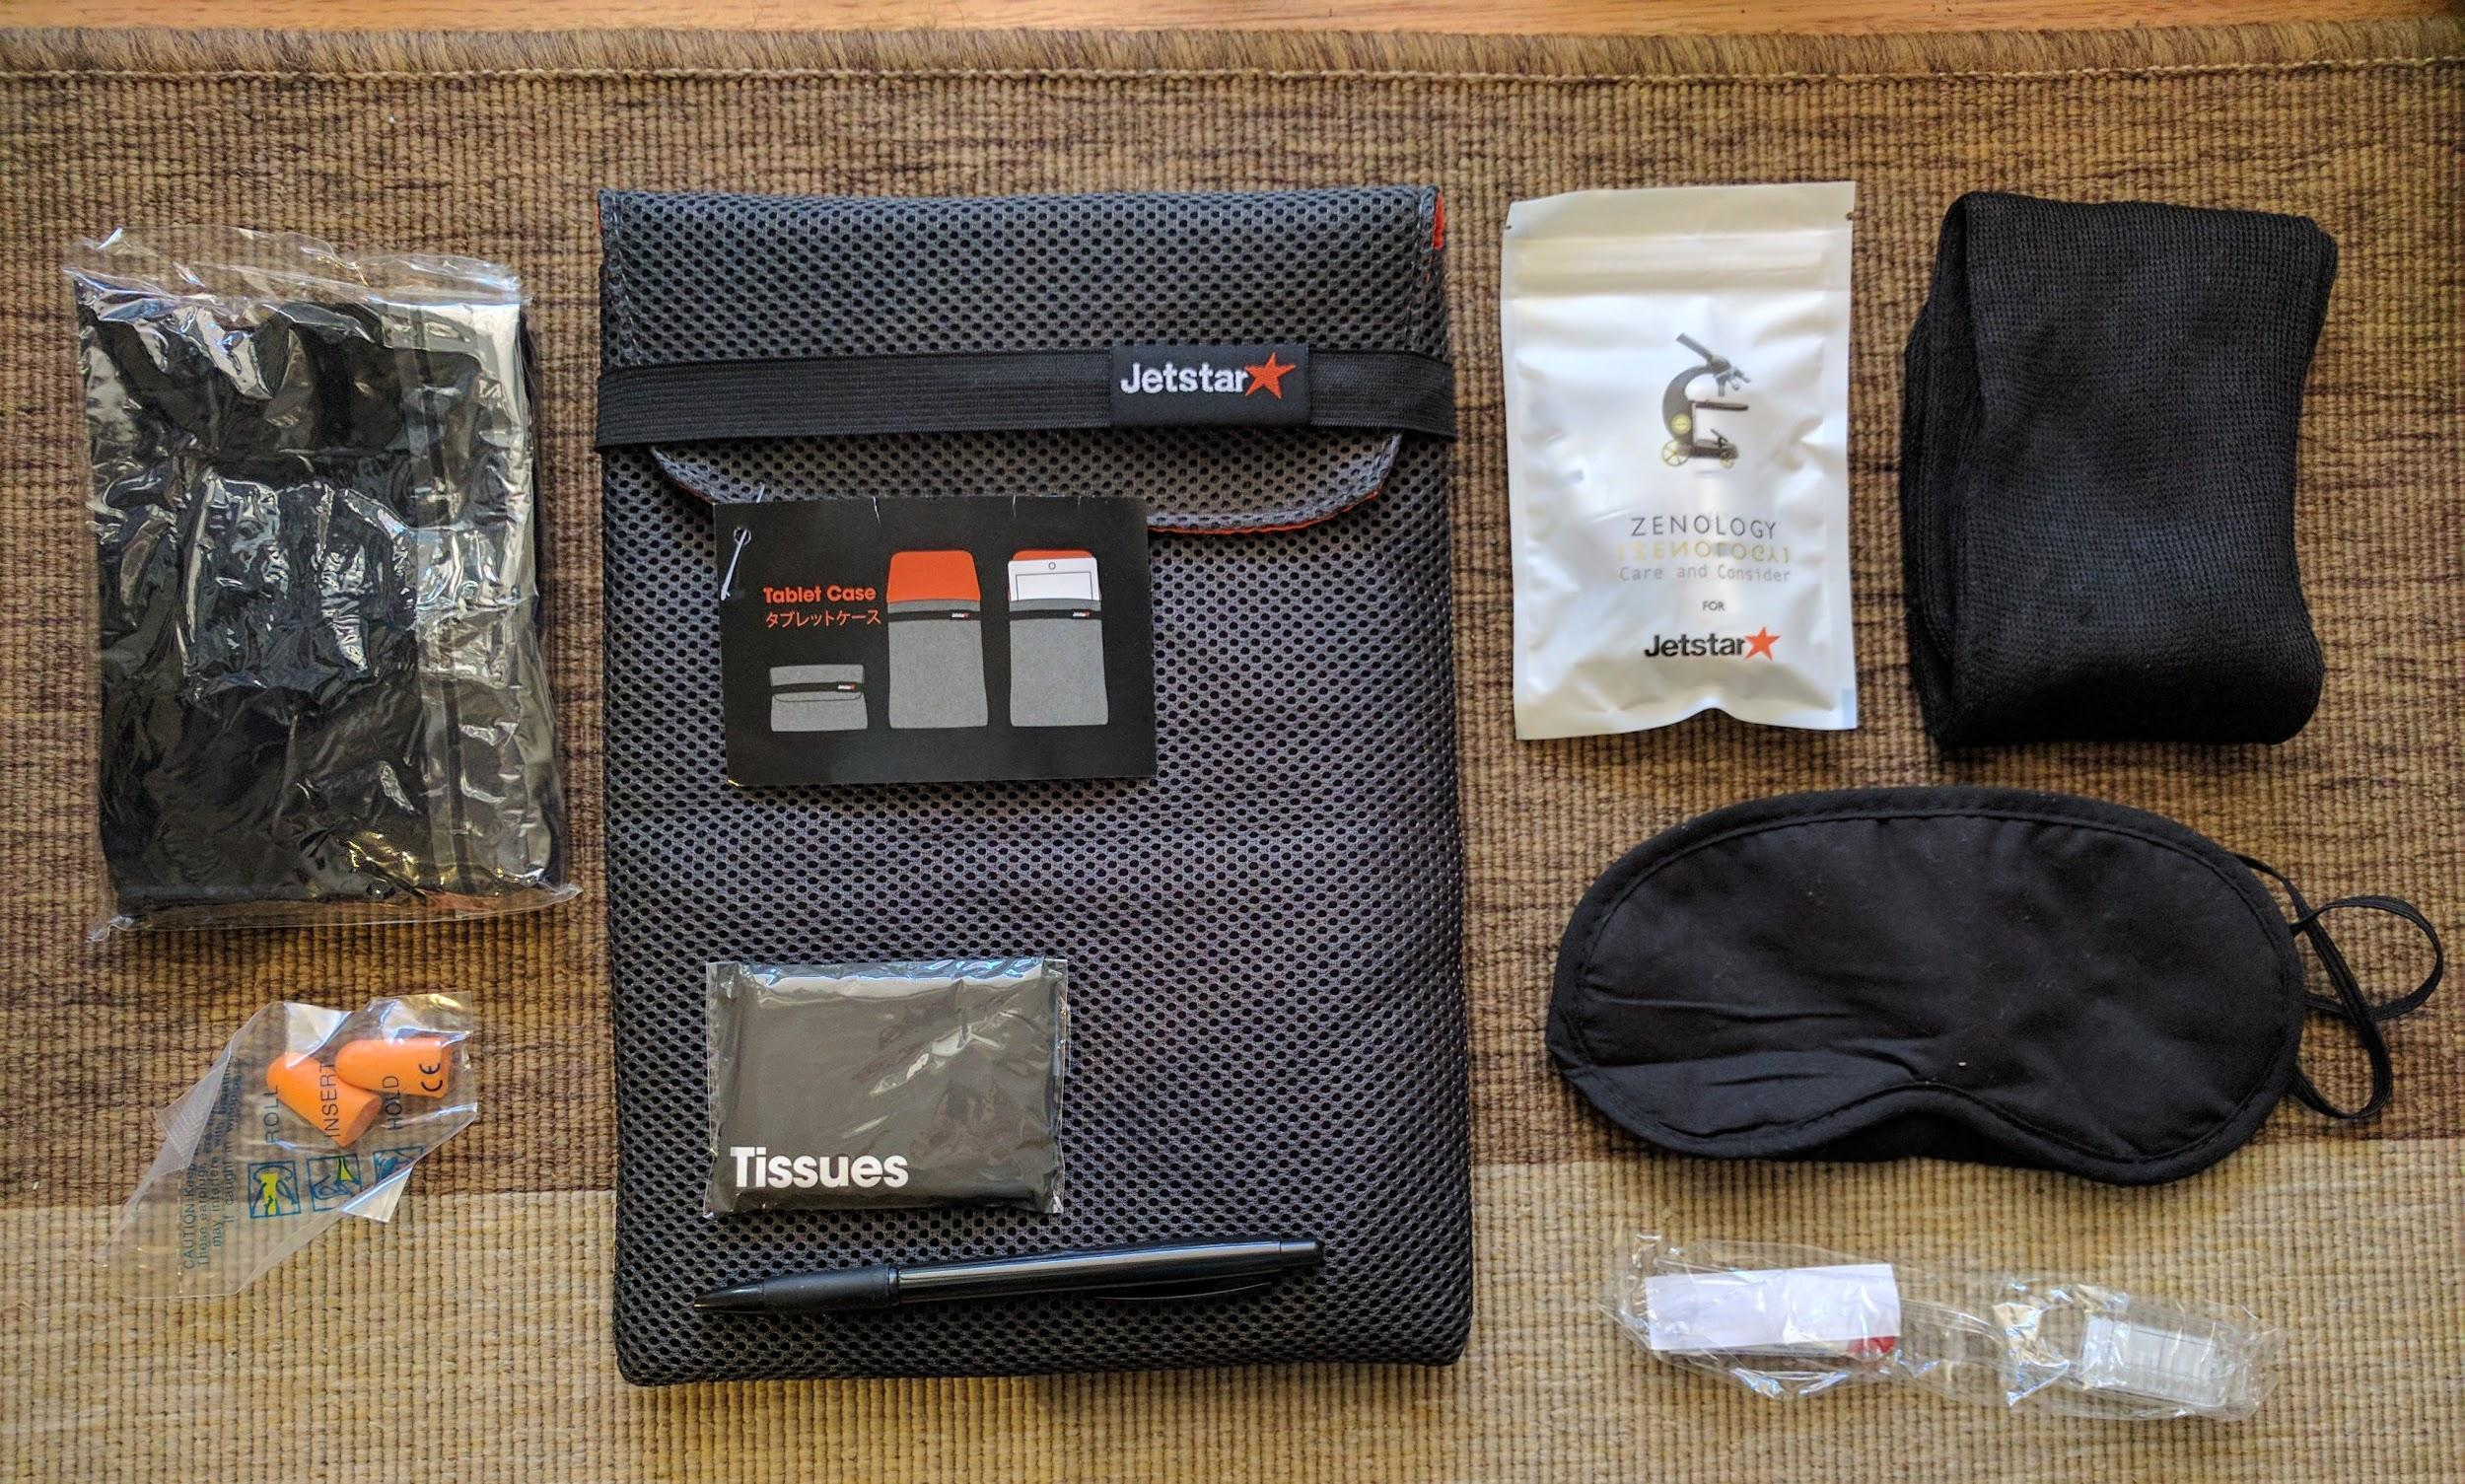 Jetstar Business Class amenities kit